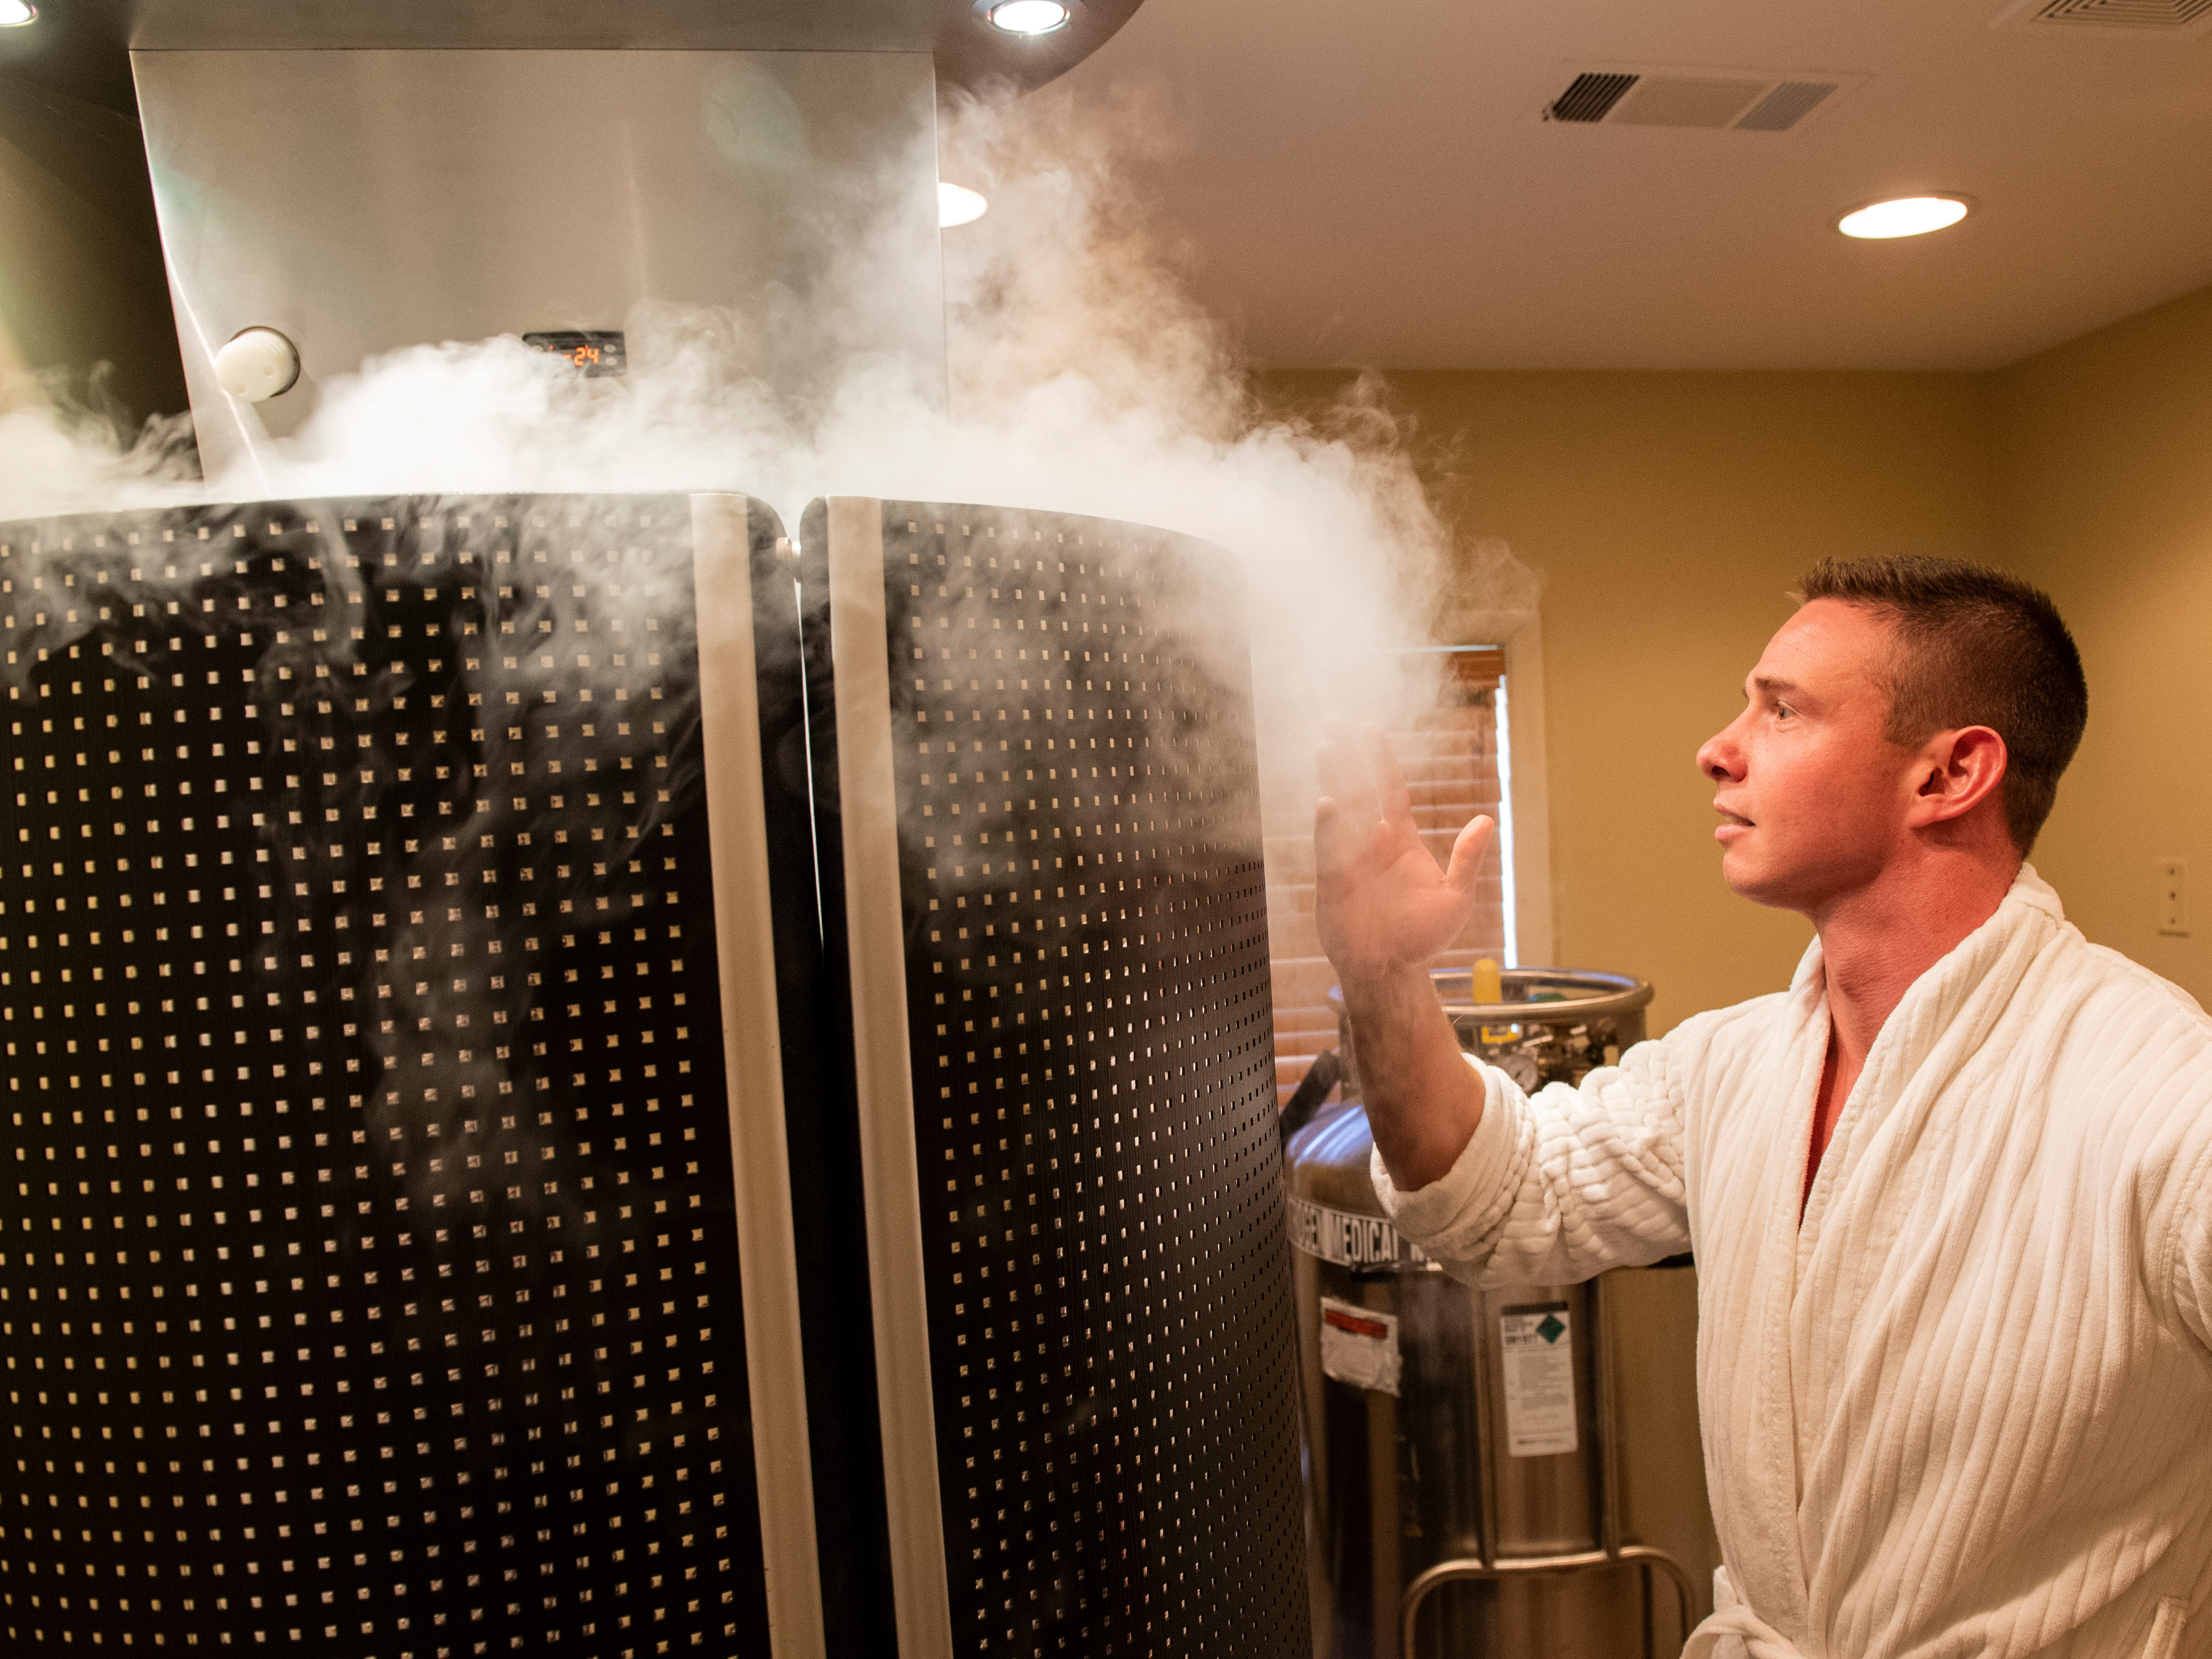 While nitrogen gas is released in the chamber, the chill of the gas fills the room, Tuesday, Aug. 27, 2018. Cryotherapy is a treatment using liquid nitrogen gas in an enclosed chamber to surround a patientÕs body with freezing temperatures.